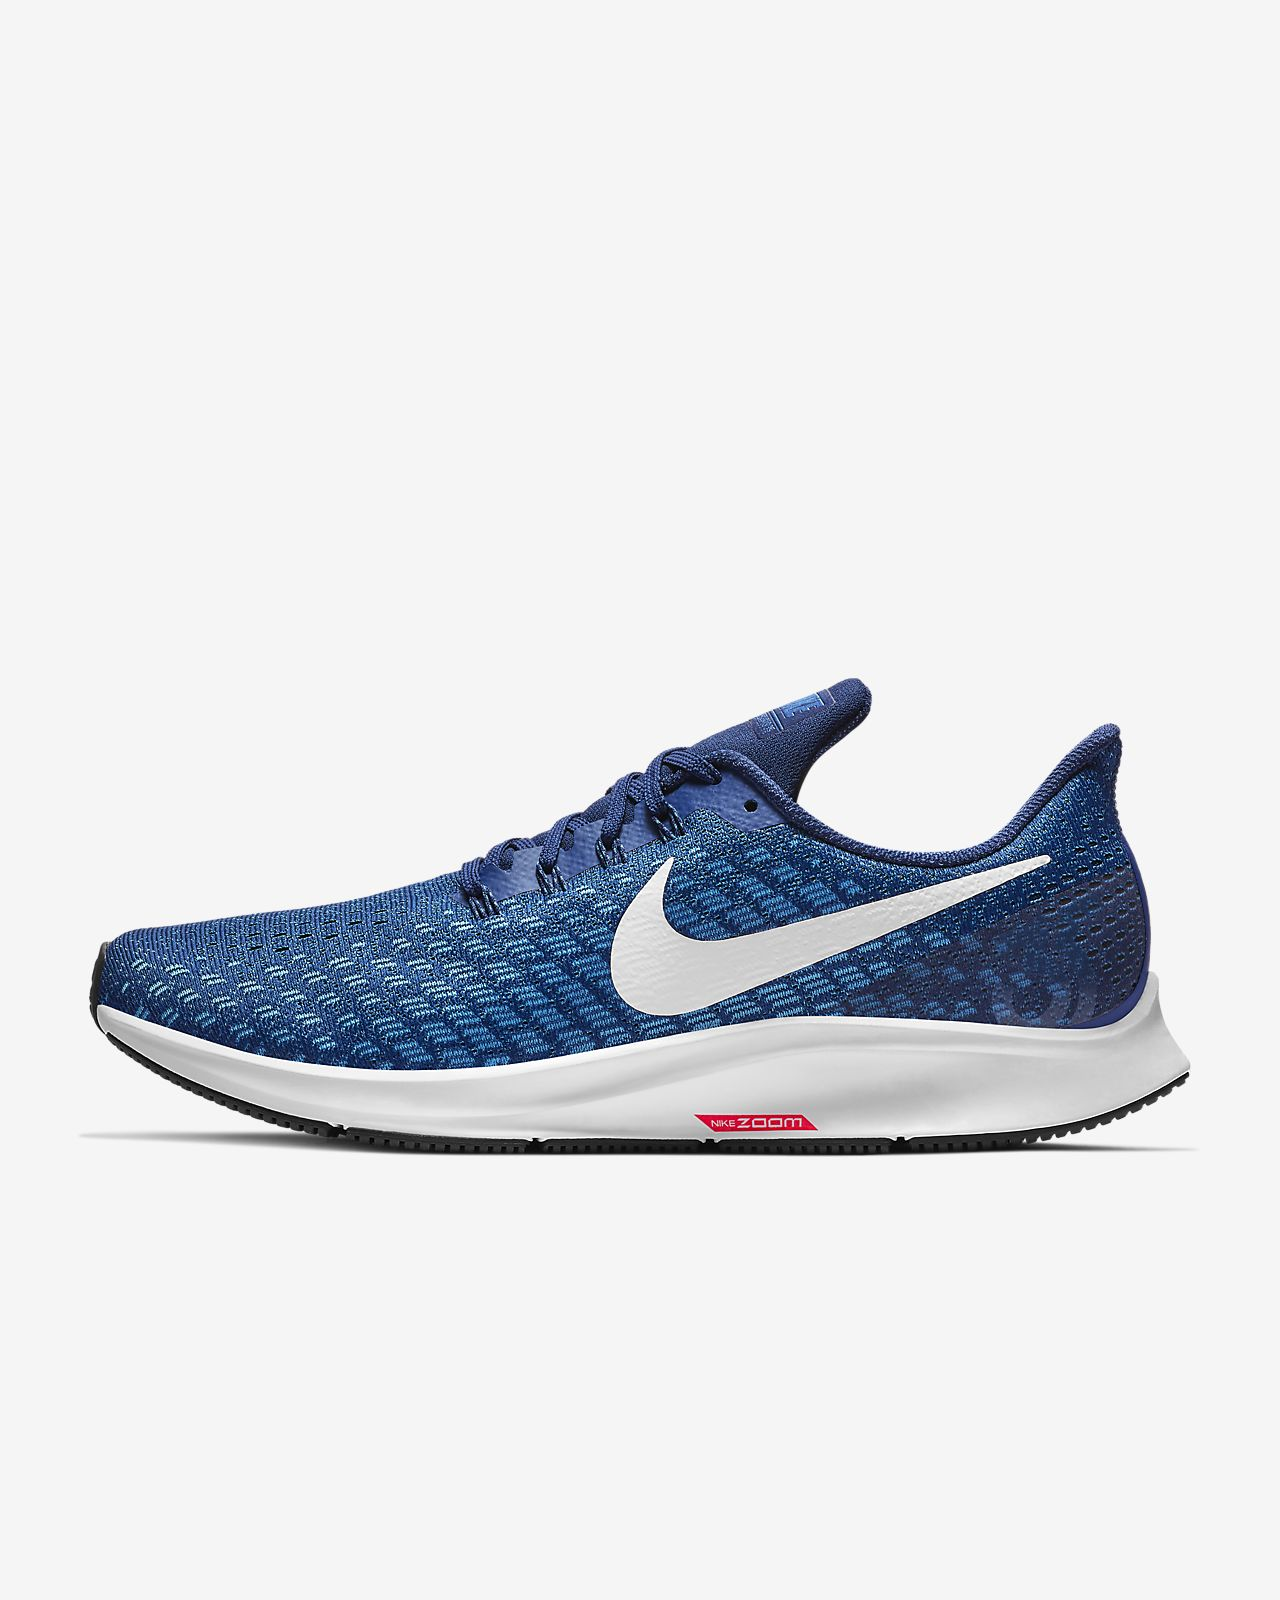 30ed498111ad1 Nike Air Zoom Pegasus 35 Men s Running Shoe. Nike.com AU